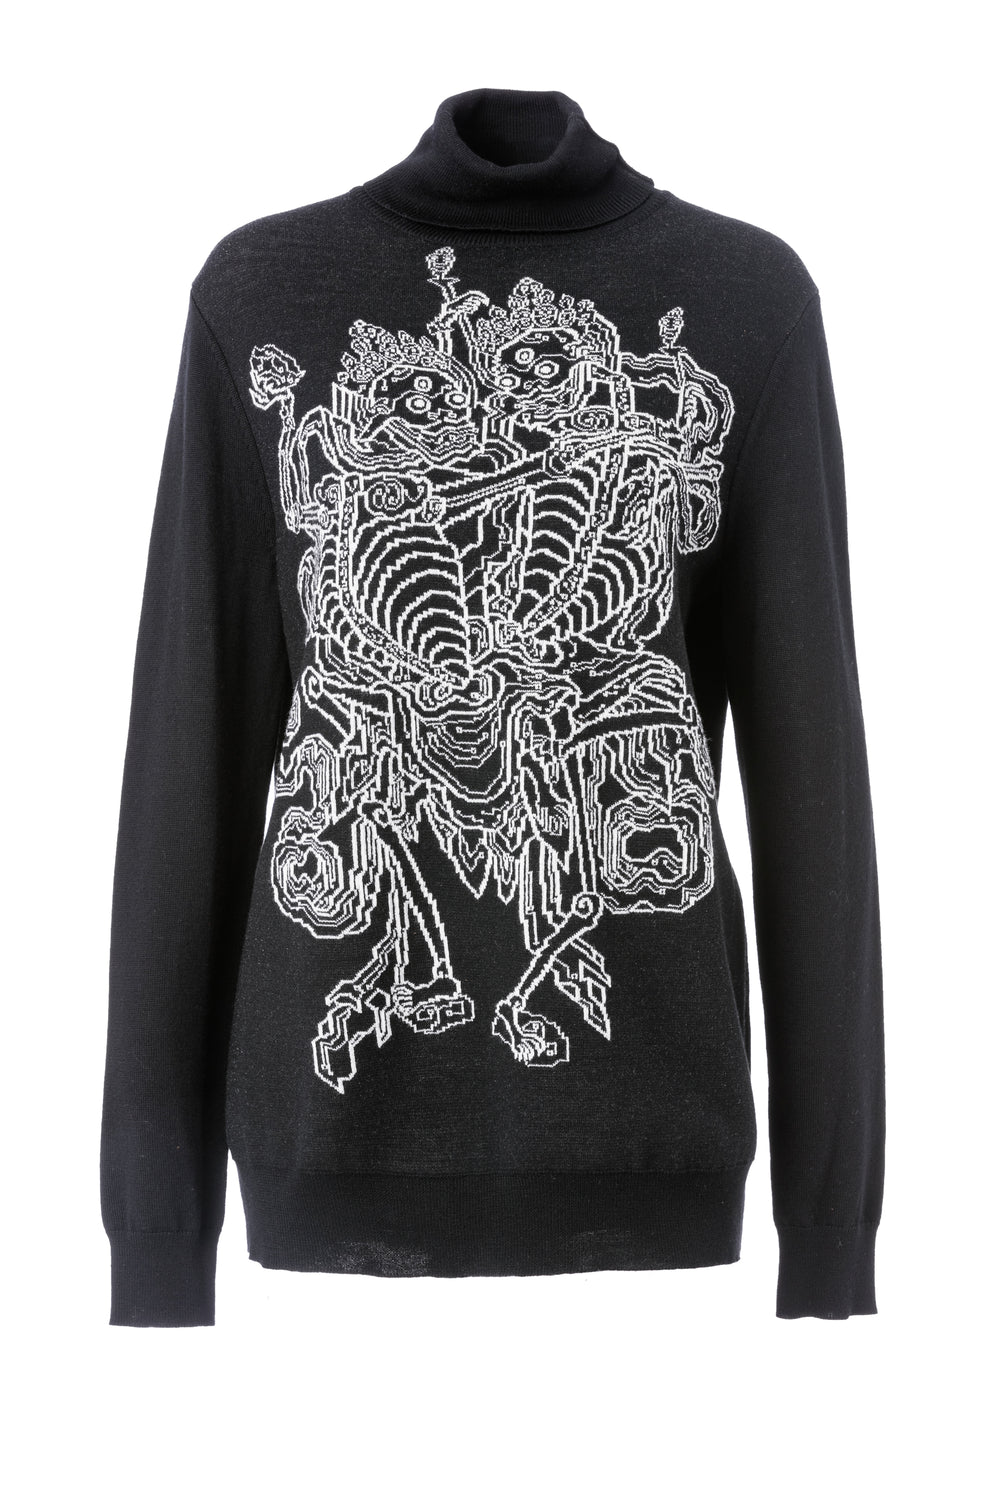 Womens Black Skeleton Jacquard Pullover Sweater